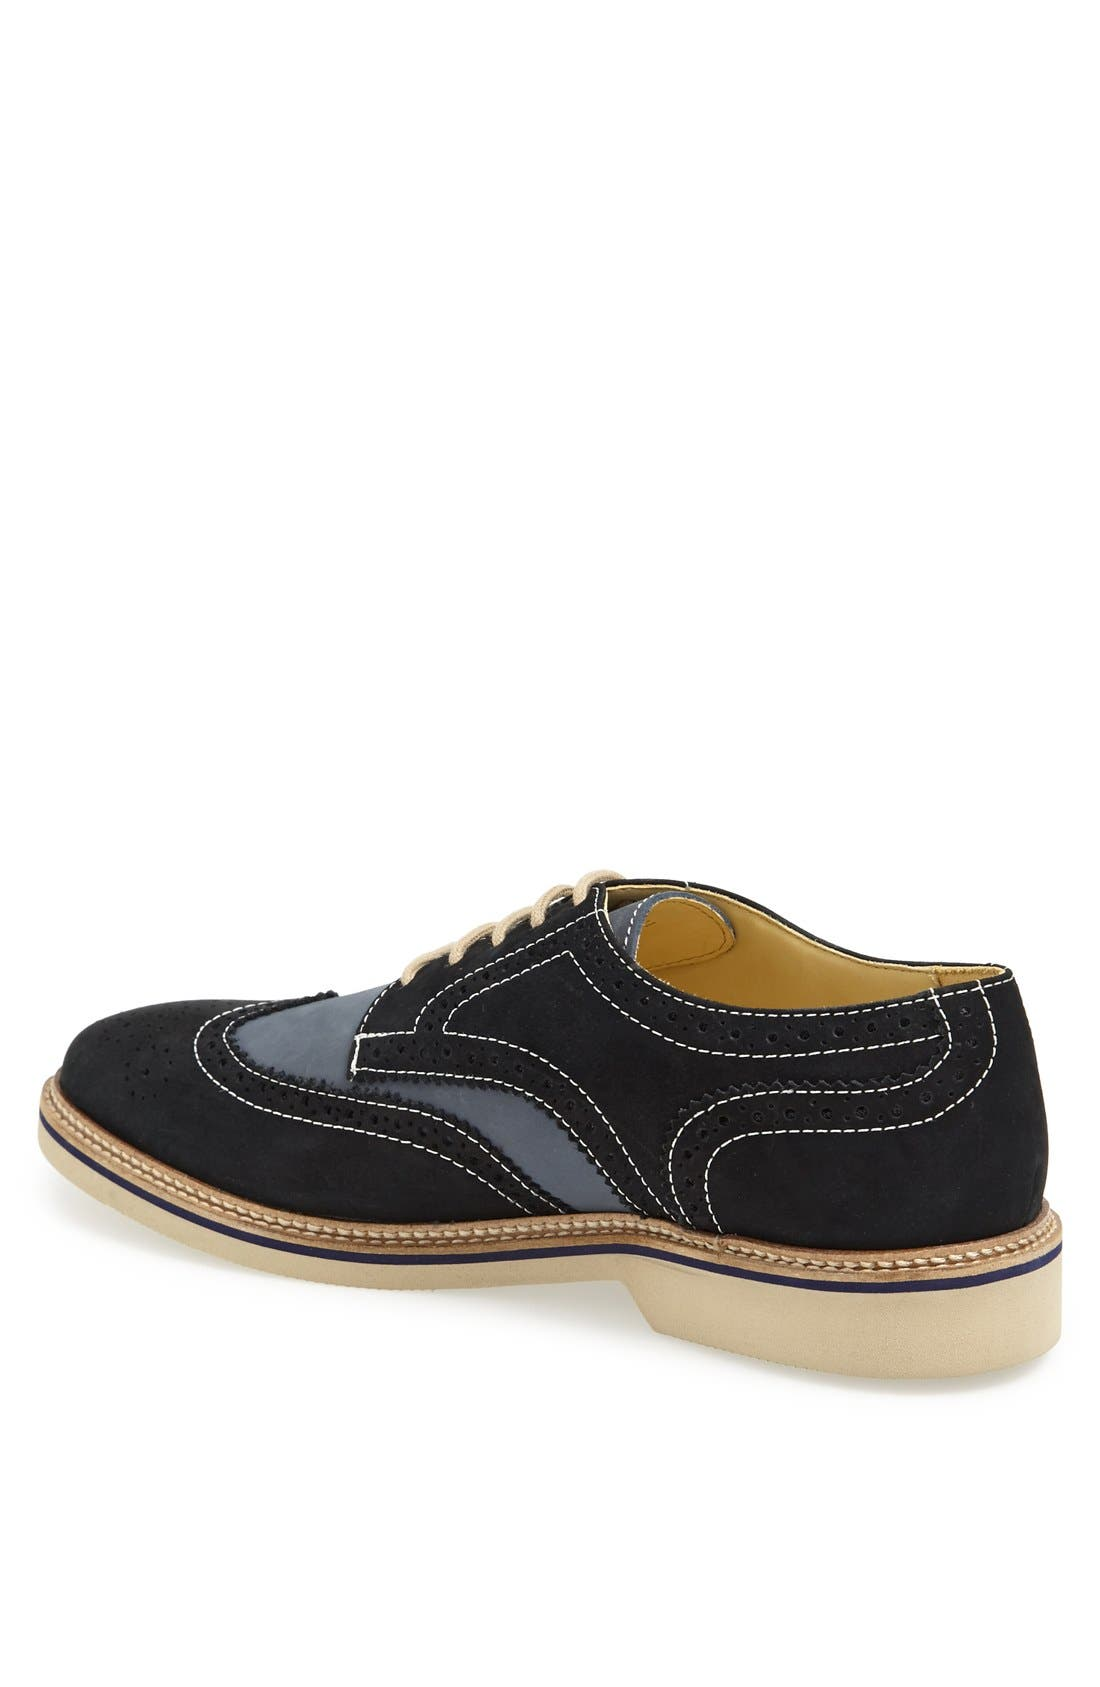 Alternate Image 2  - 1901 'Wing It' Suede Oxford (Men)